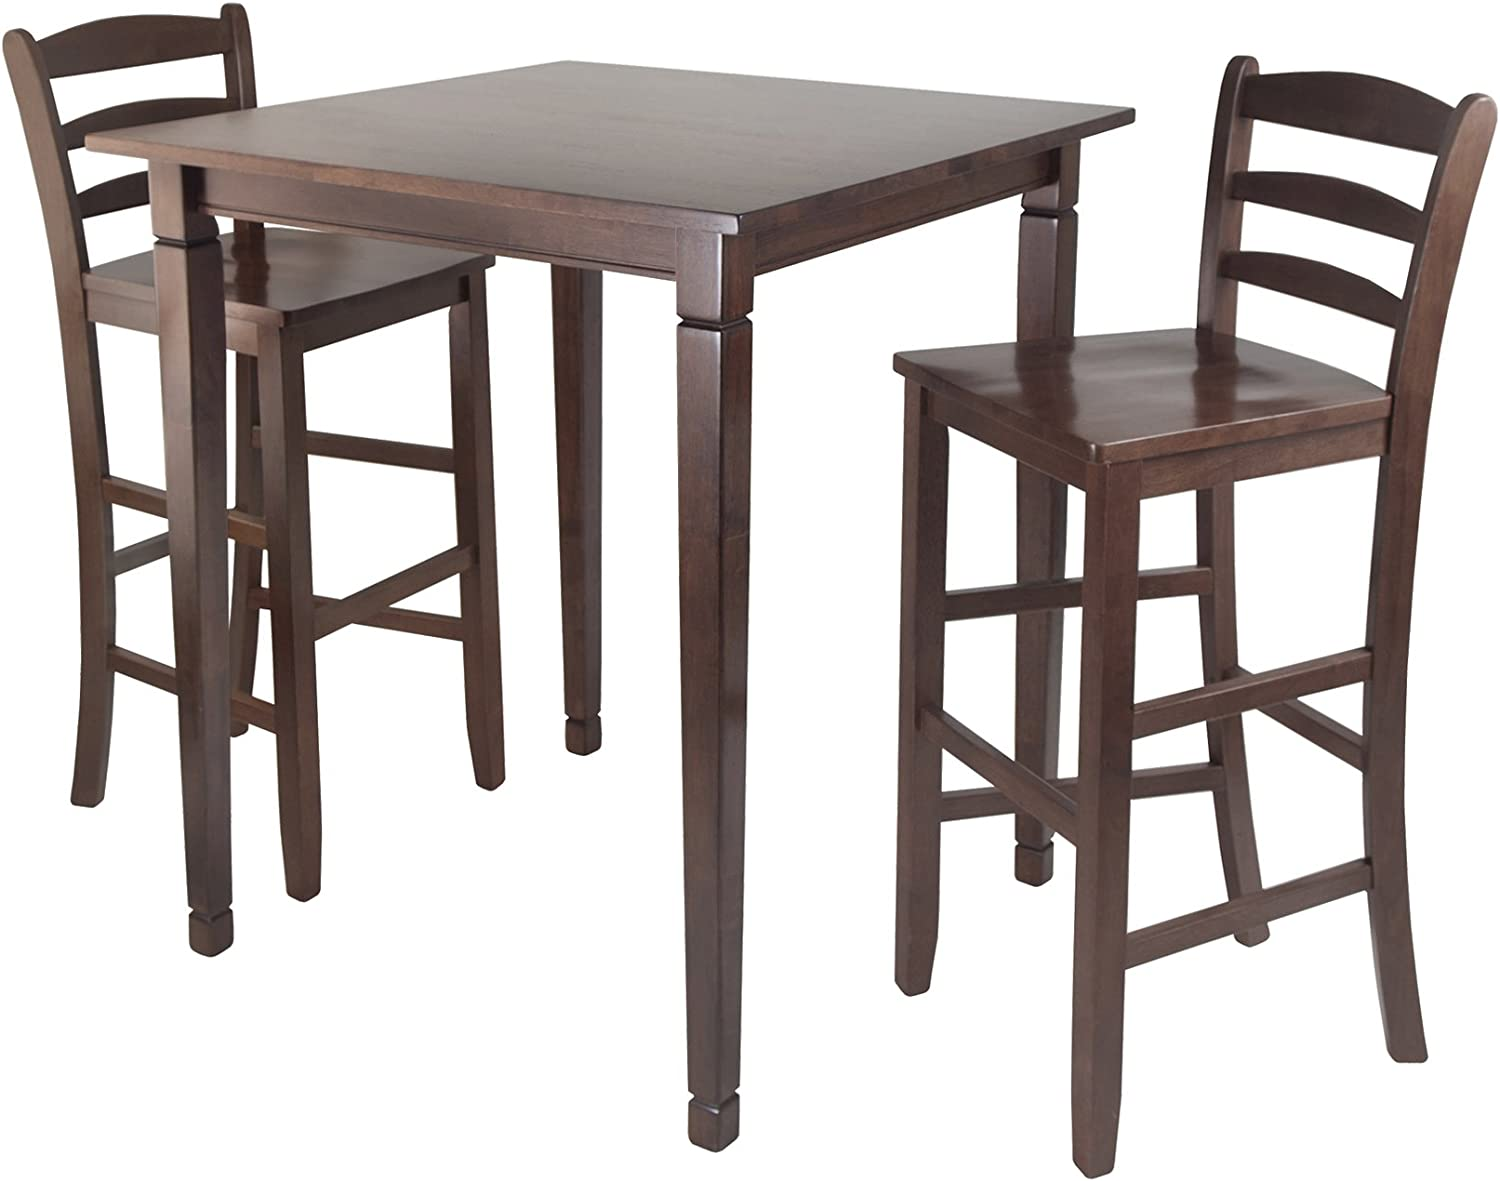 Winsome Kingsgate High/Pub Dining Table with Ladder Back High Chair, 12-Piece